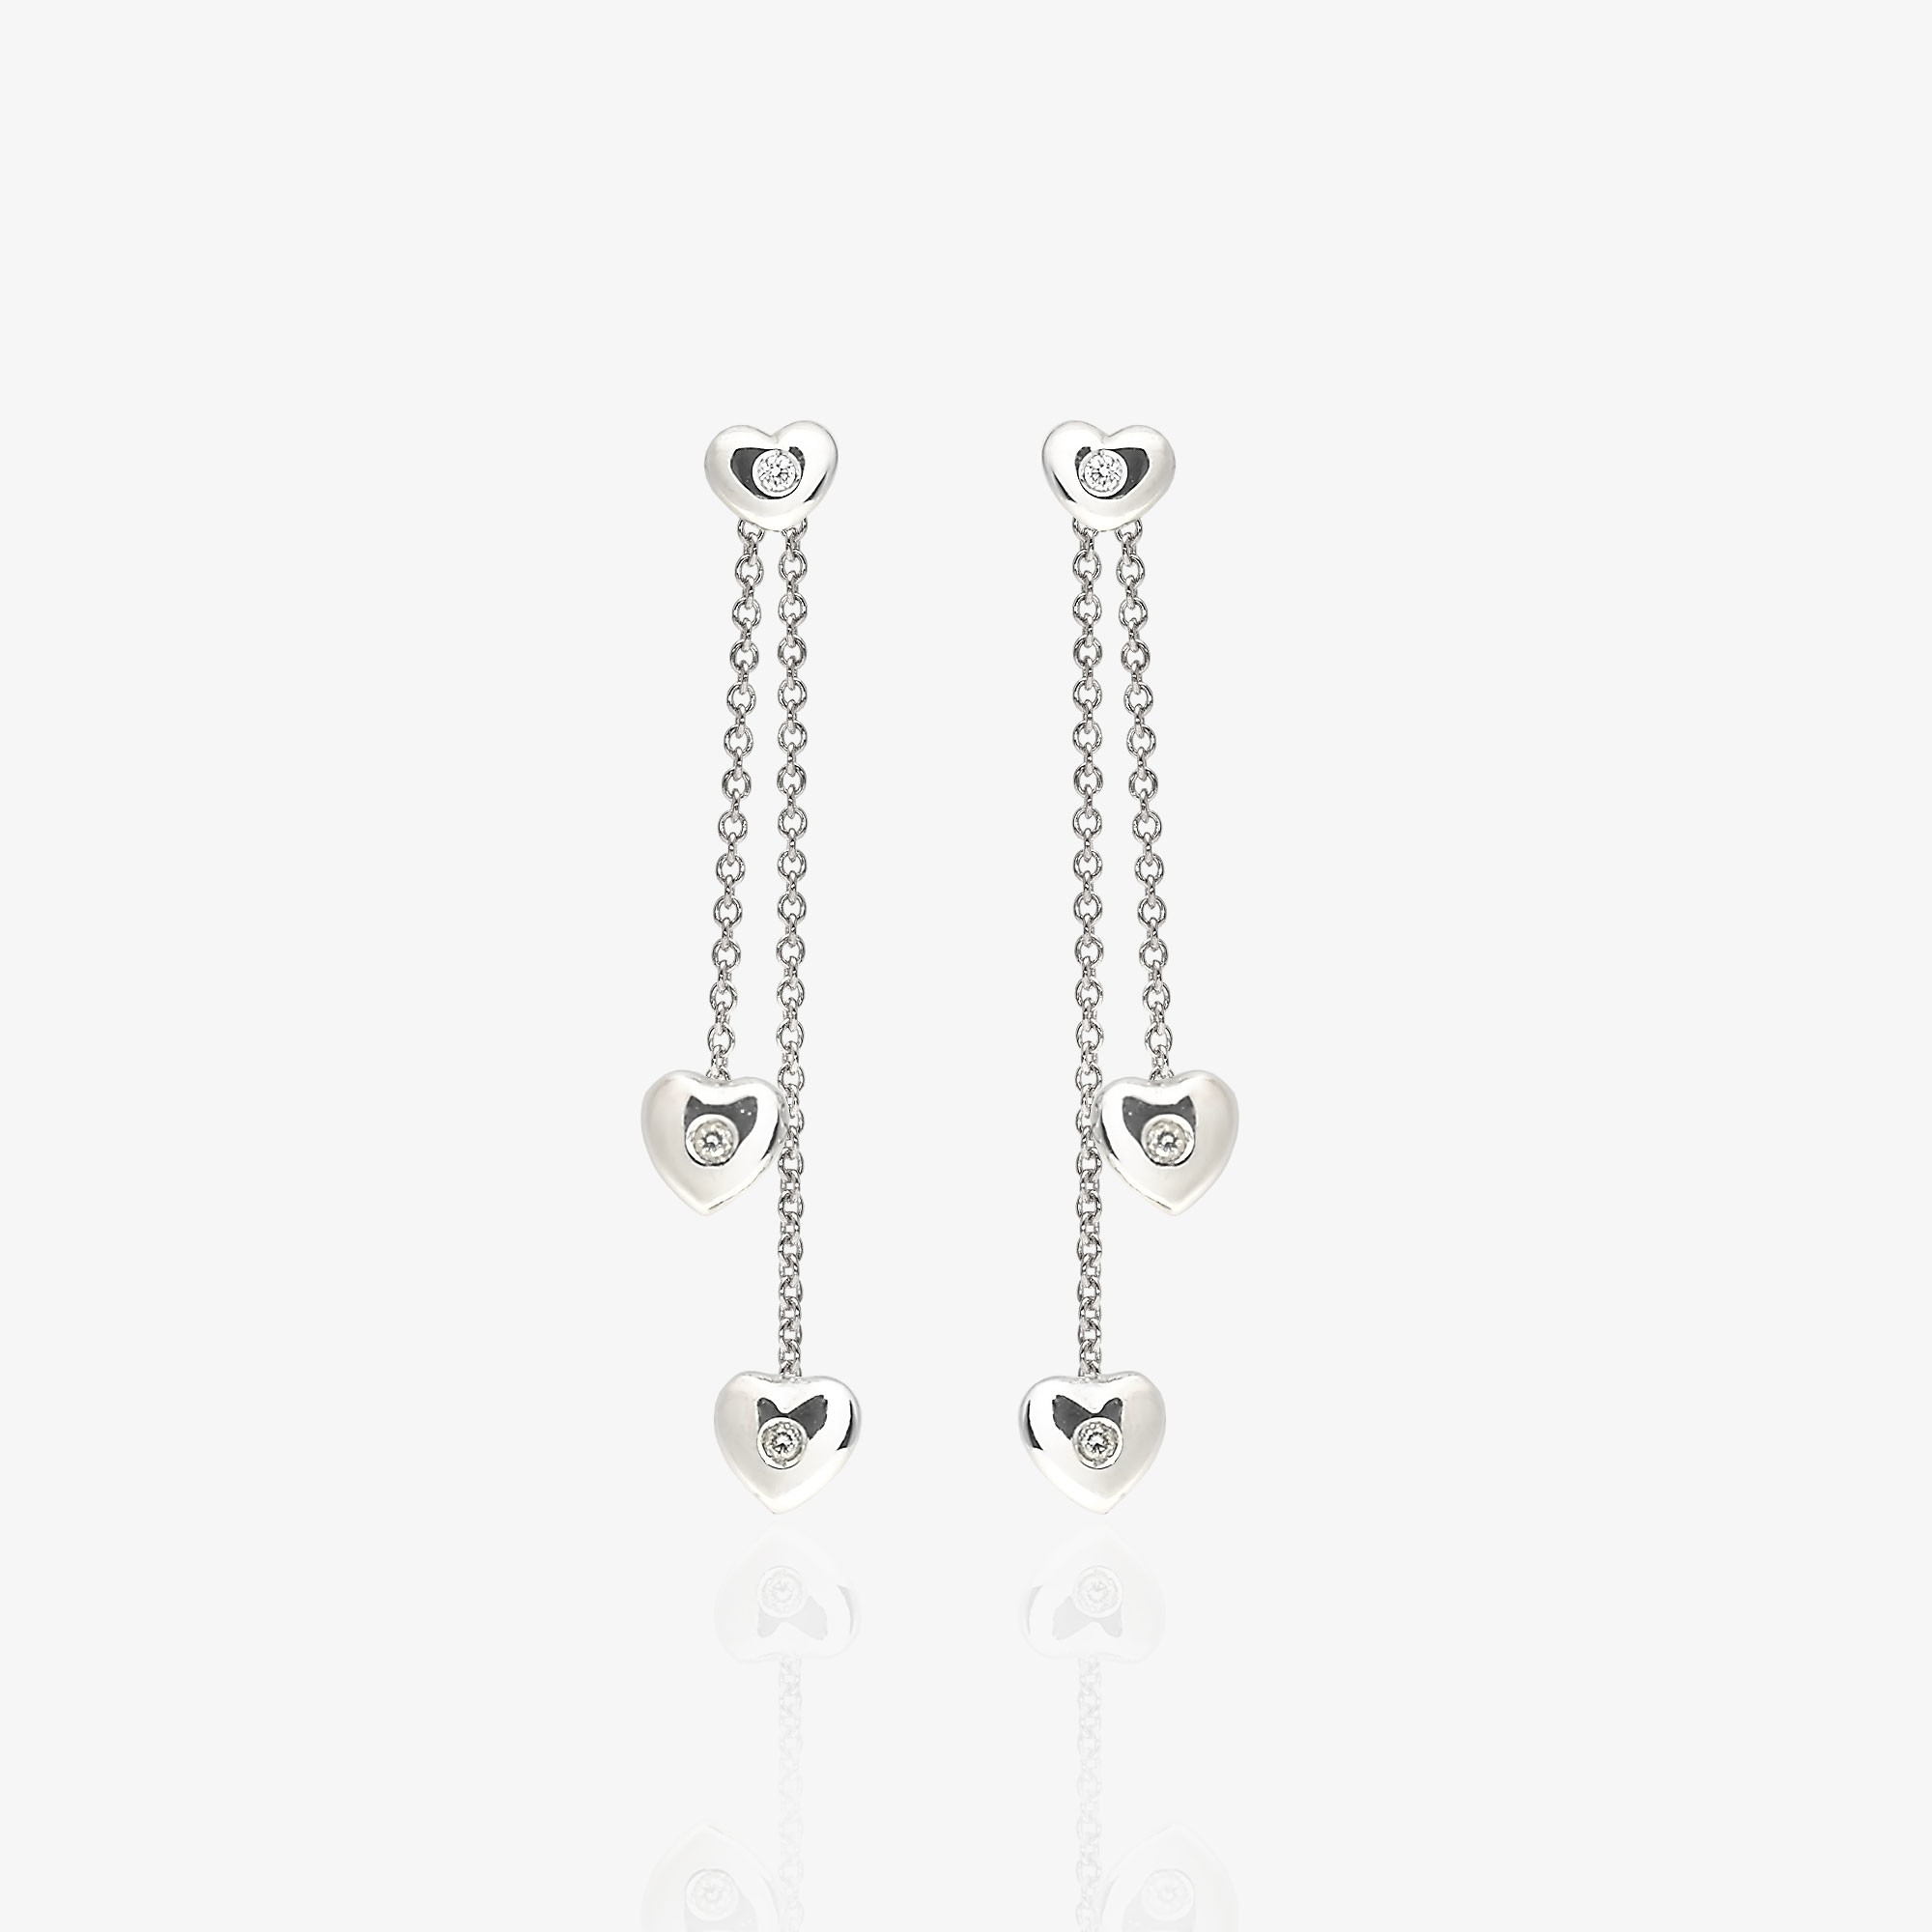 Slave to love earrings